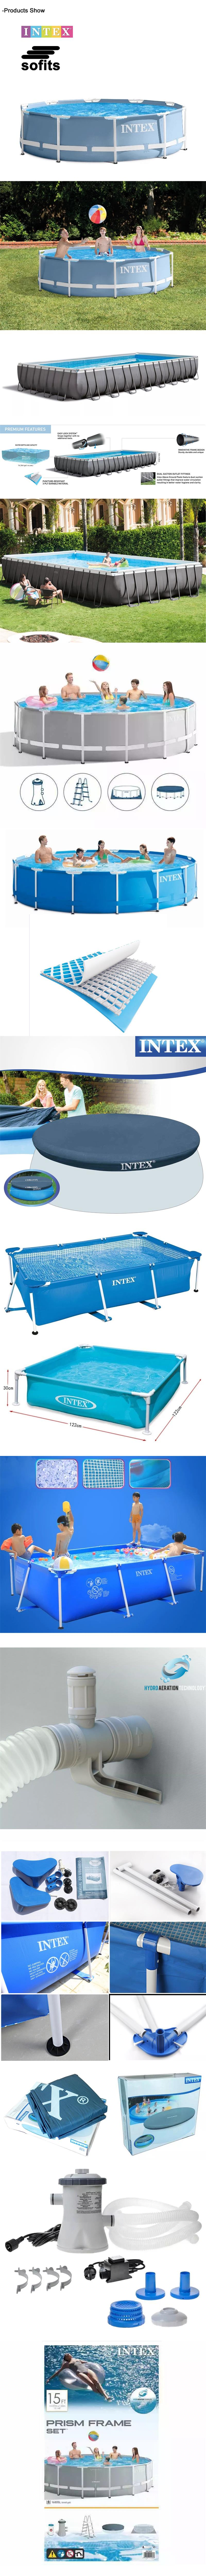 Intex 28404 PureSpa Jet & Bubble Deluxe Inflatable Jacuzzi Heating Pool Swim Mini Spa Outdoor Bubble Massage Pool